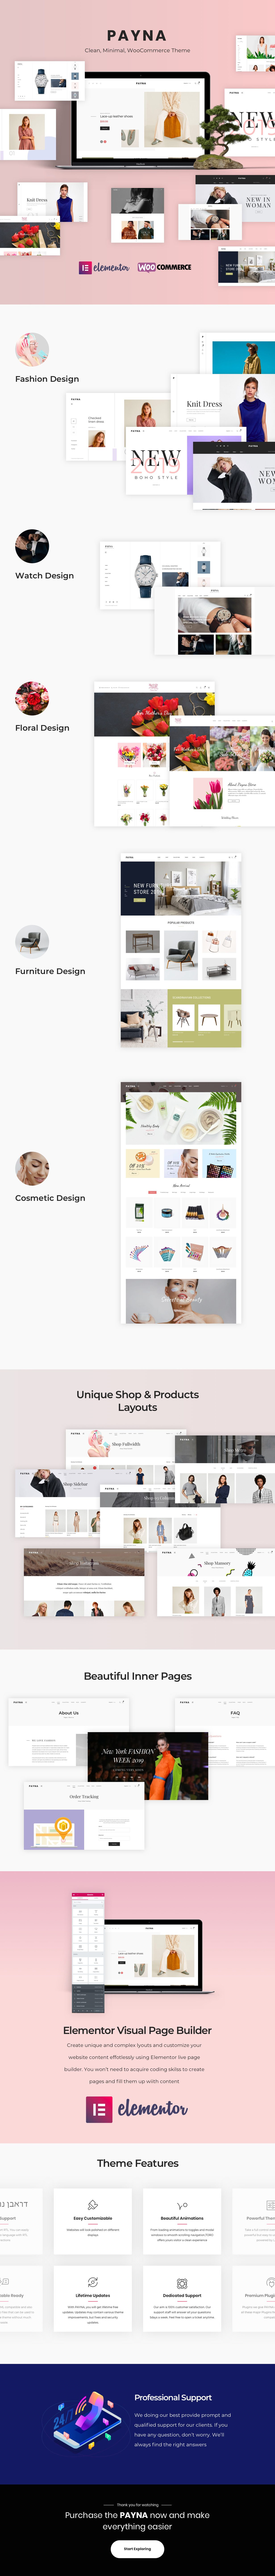 Payna - Clean, Minimal WooCommerce Theme - 2